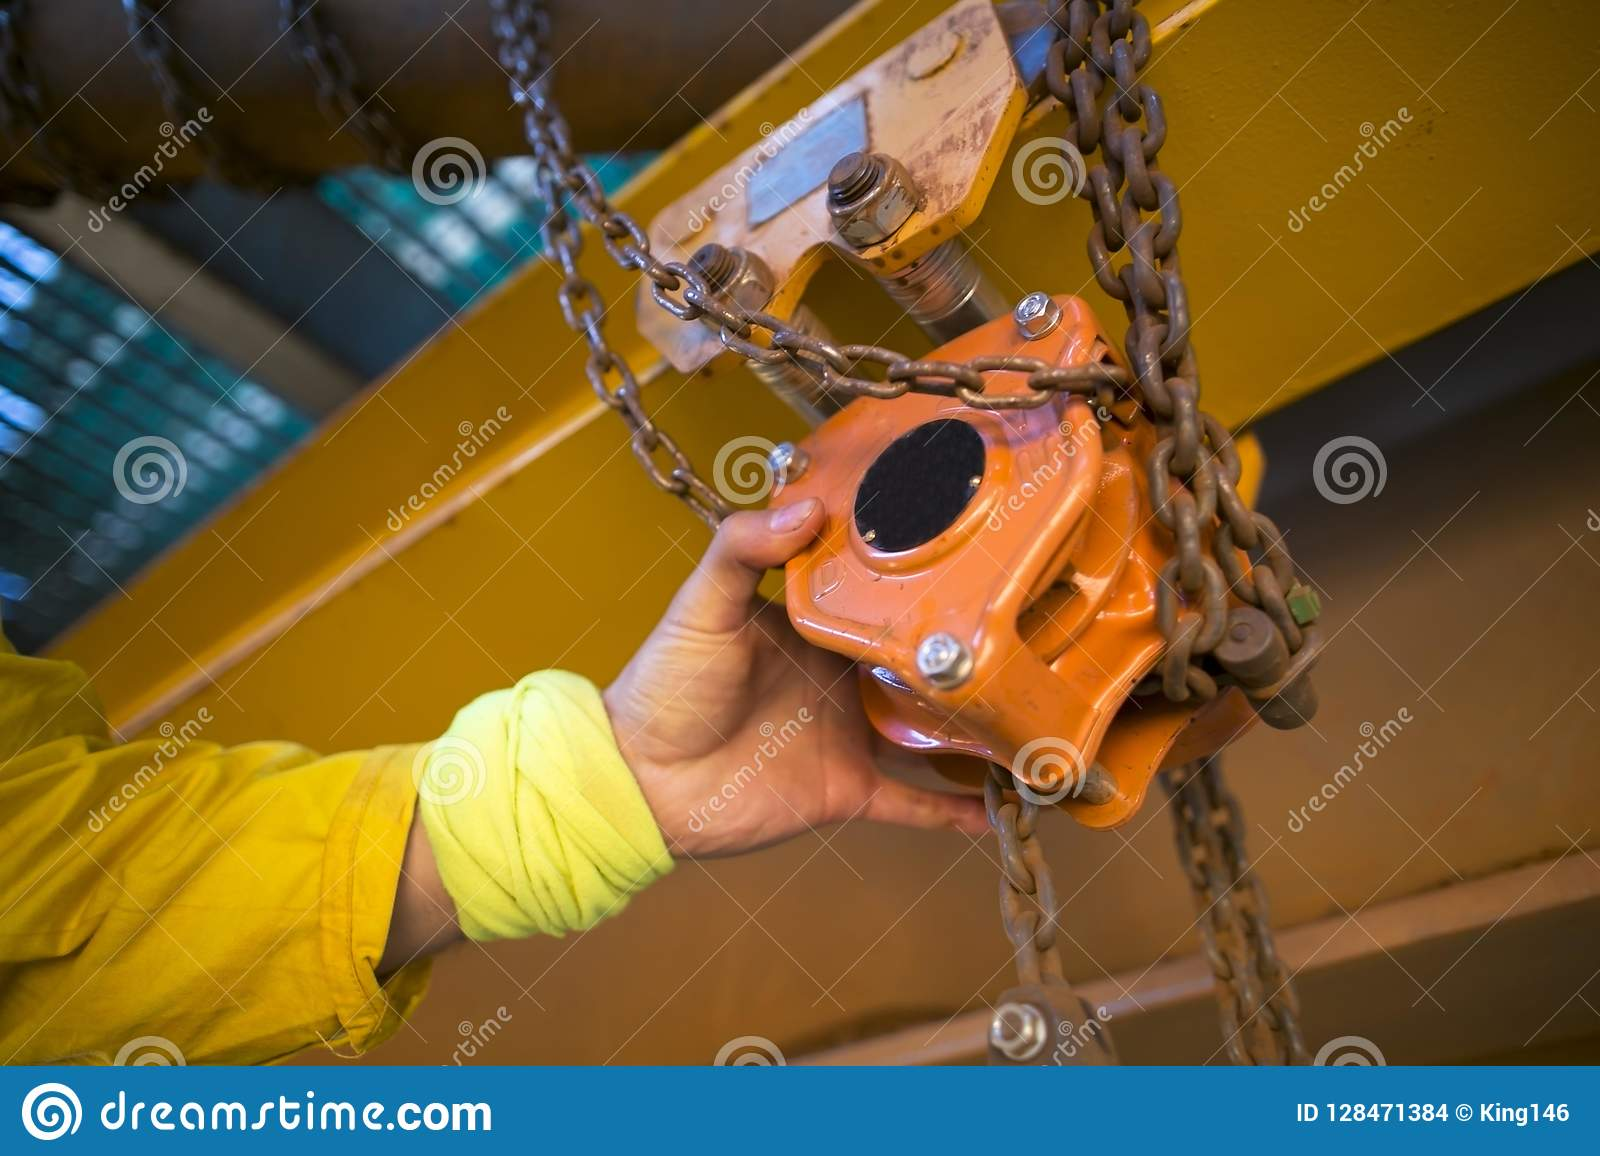 Industrial rope access inspector worker rigger hand commencing safety daily inspection check on lifting hoist chain block